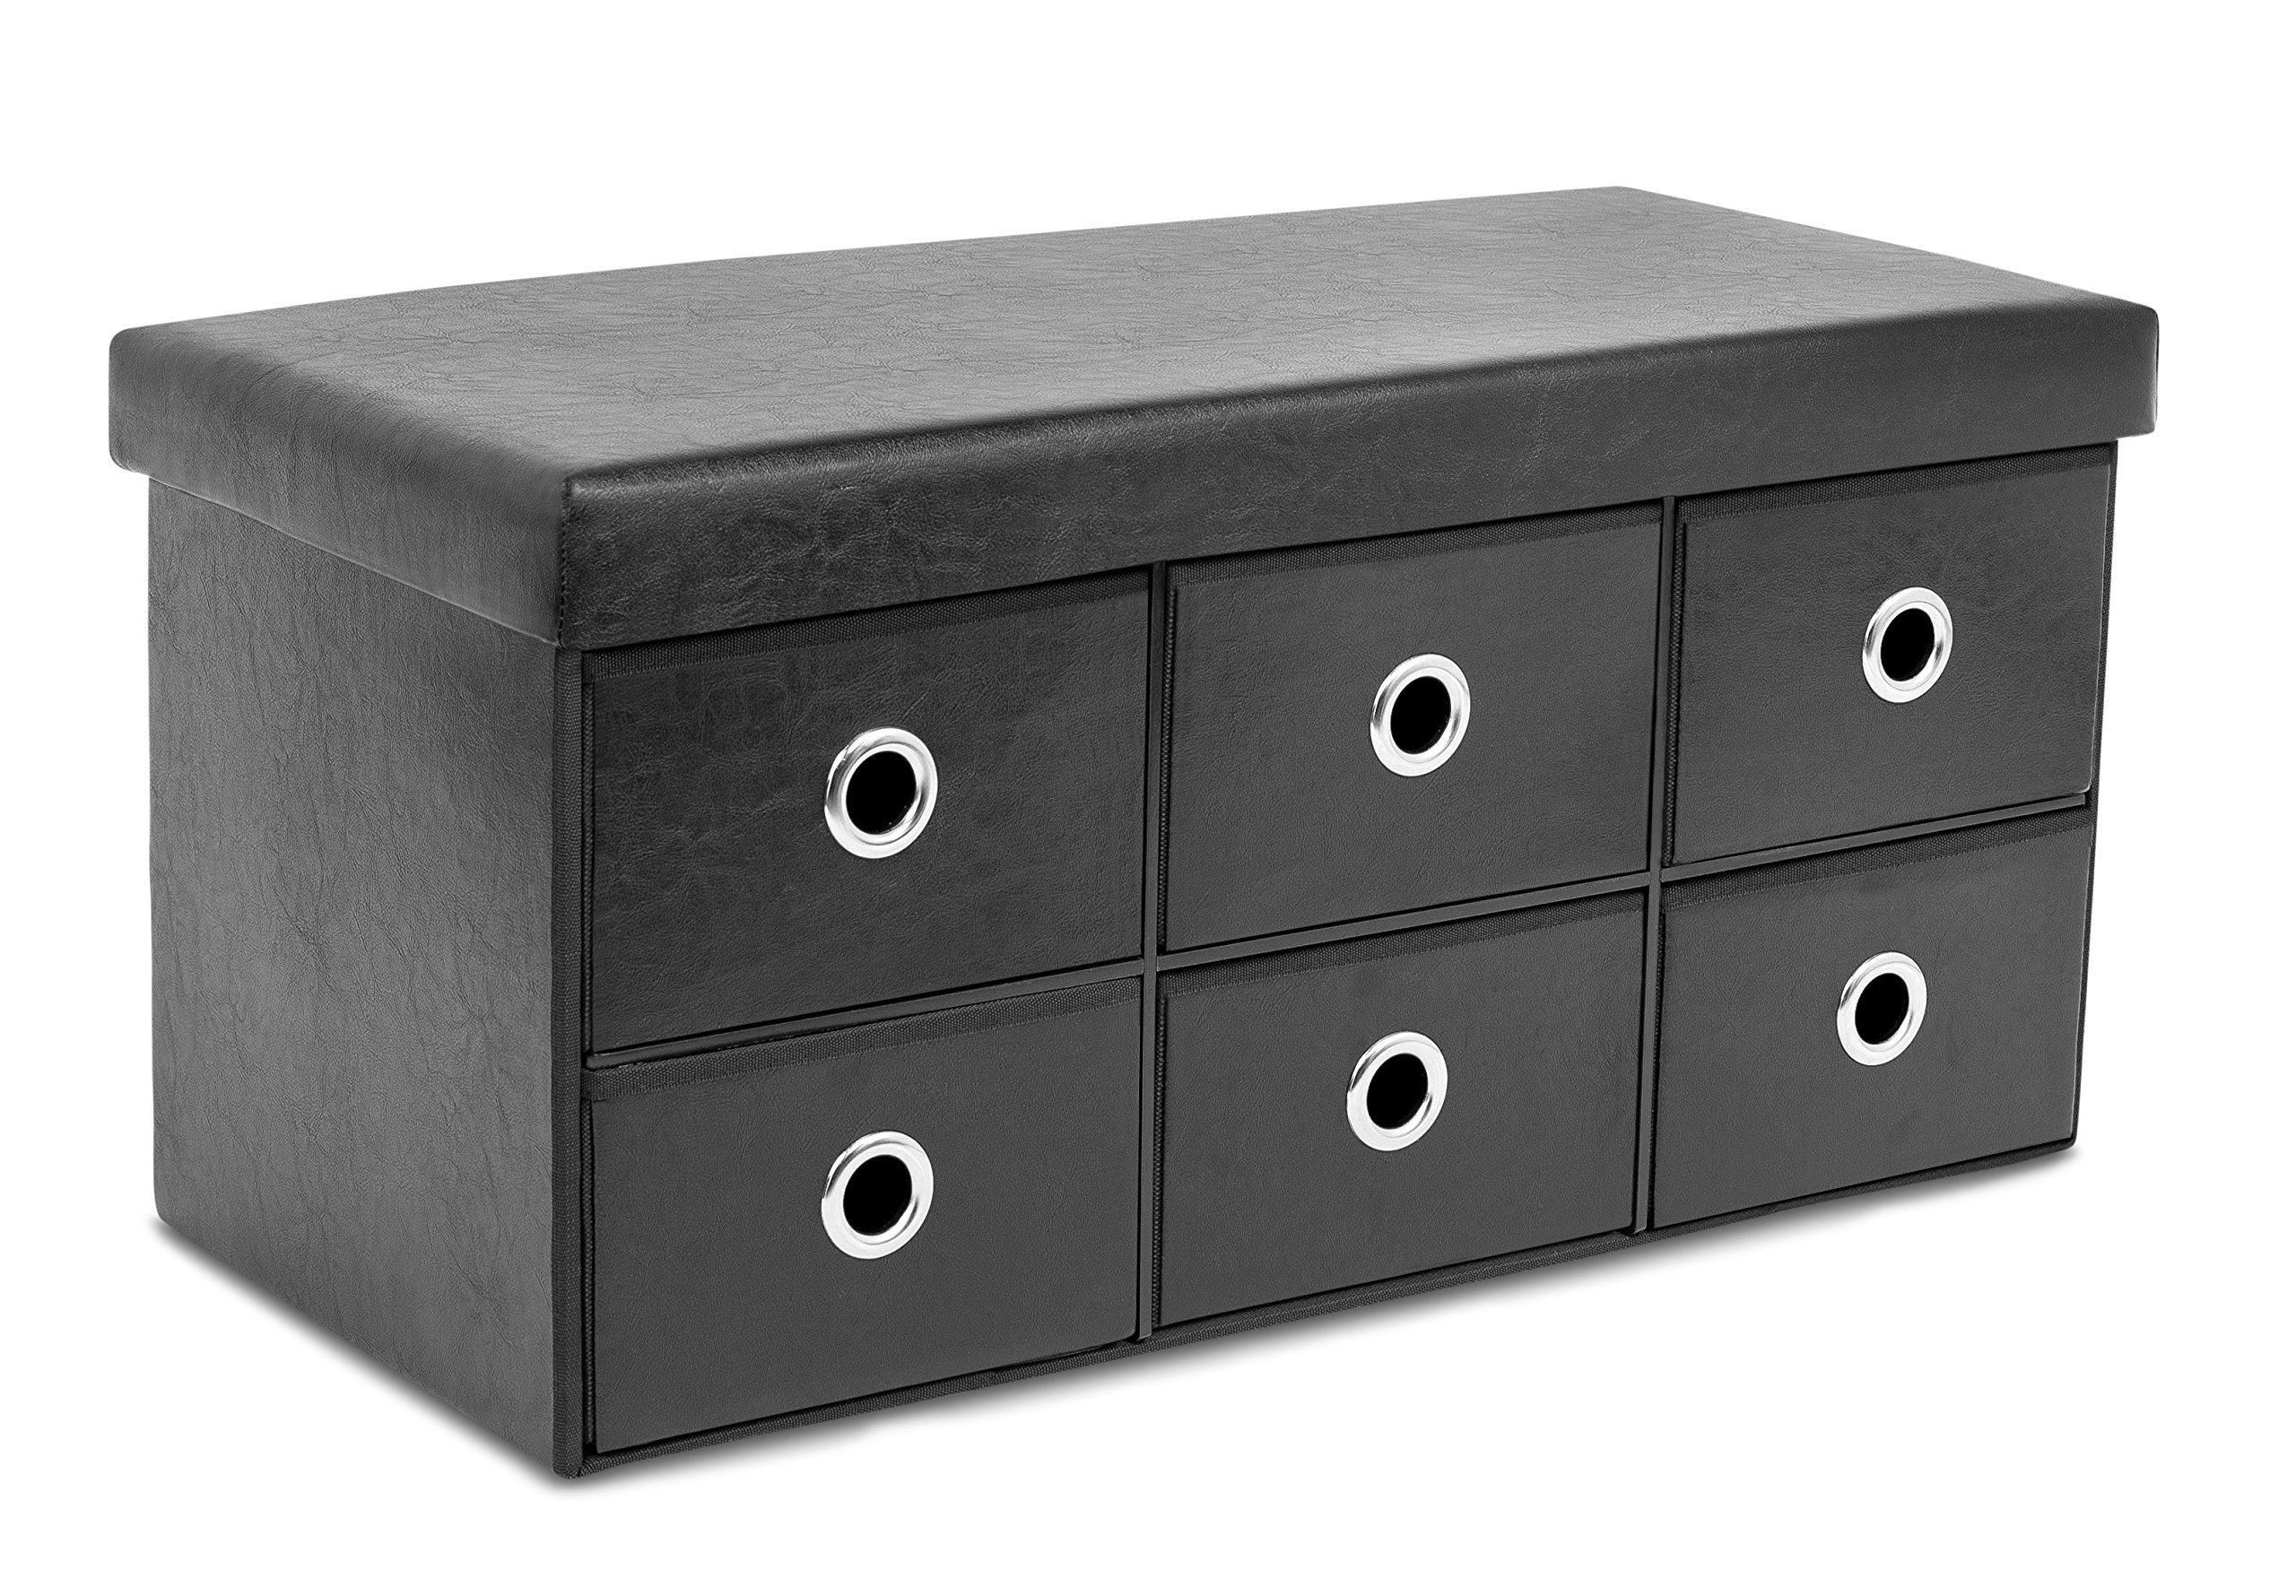 BirdRock Home Storage Bench Ottoman with Drawers | Foldable Storage 6 Cubby Drawer Footstool | Entryway Bedroom Bench | Black